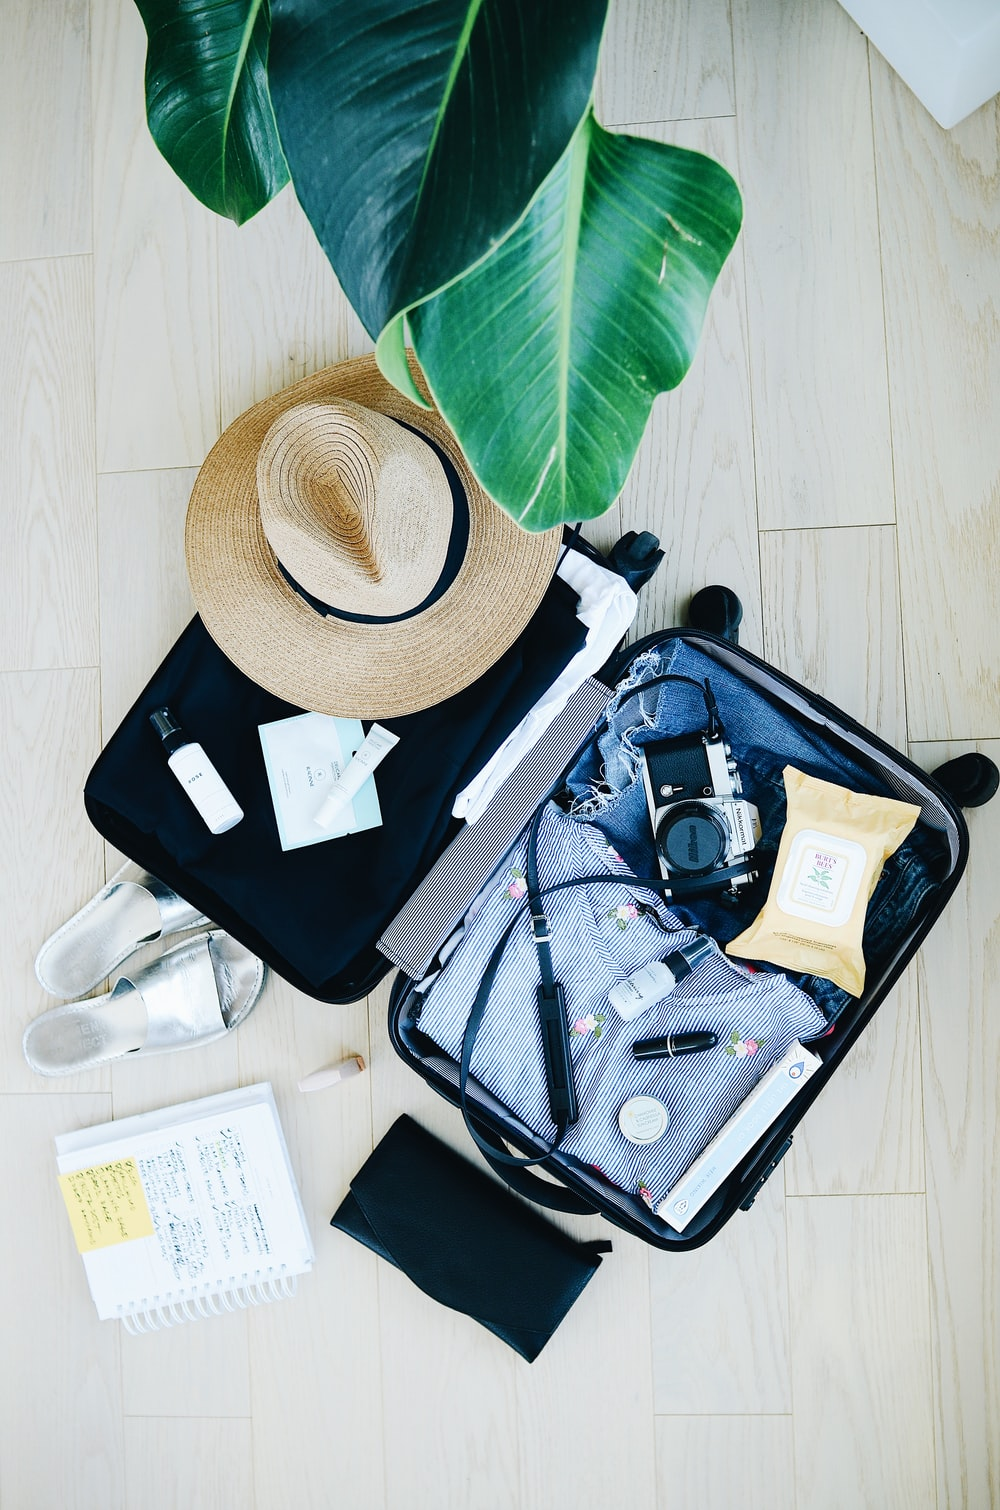 Photo Via: Unsplash.com, Flat lay of a packed vacation suitcase, STIL @stilclassics.